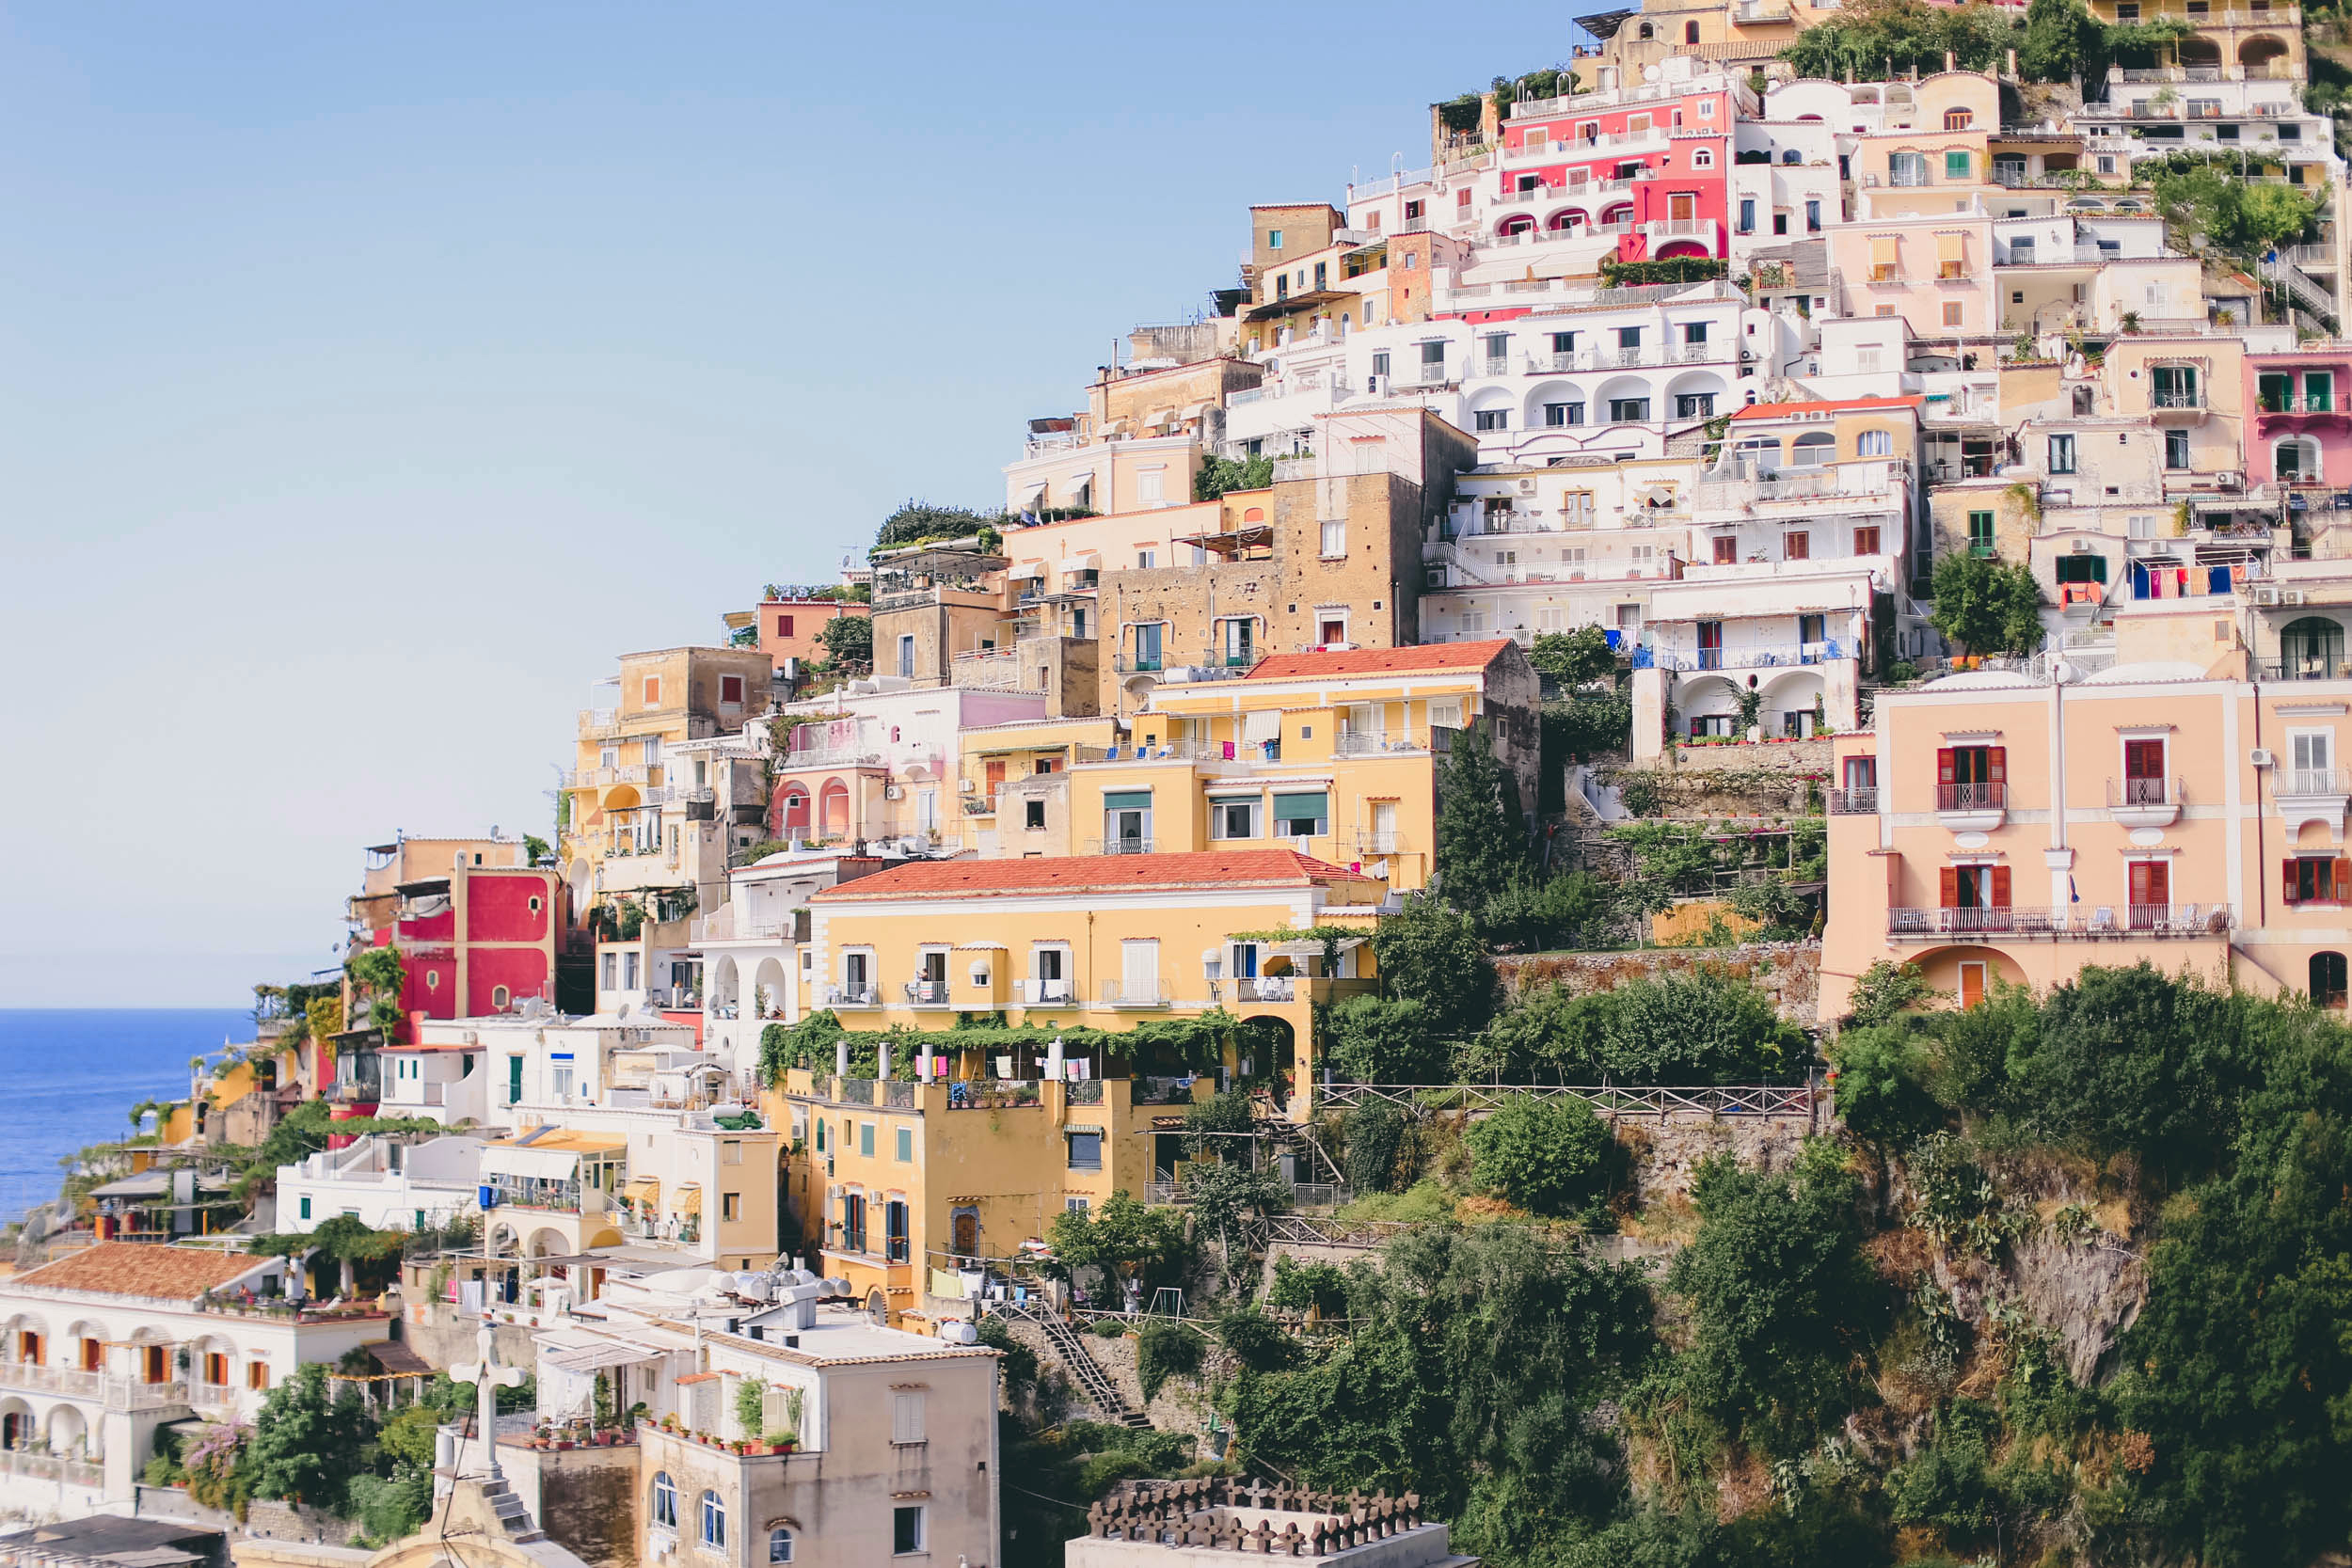 The beautiful colorful houses of Positano